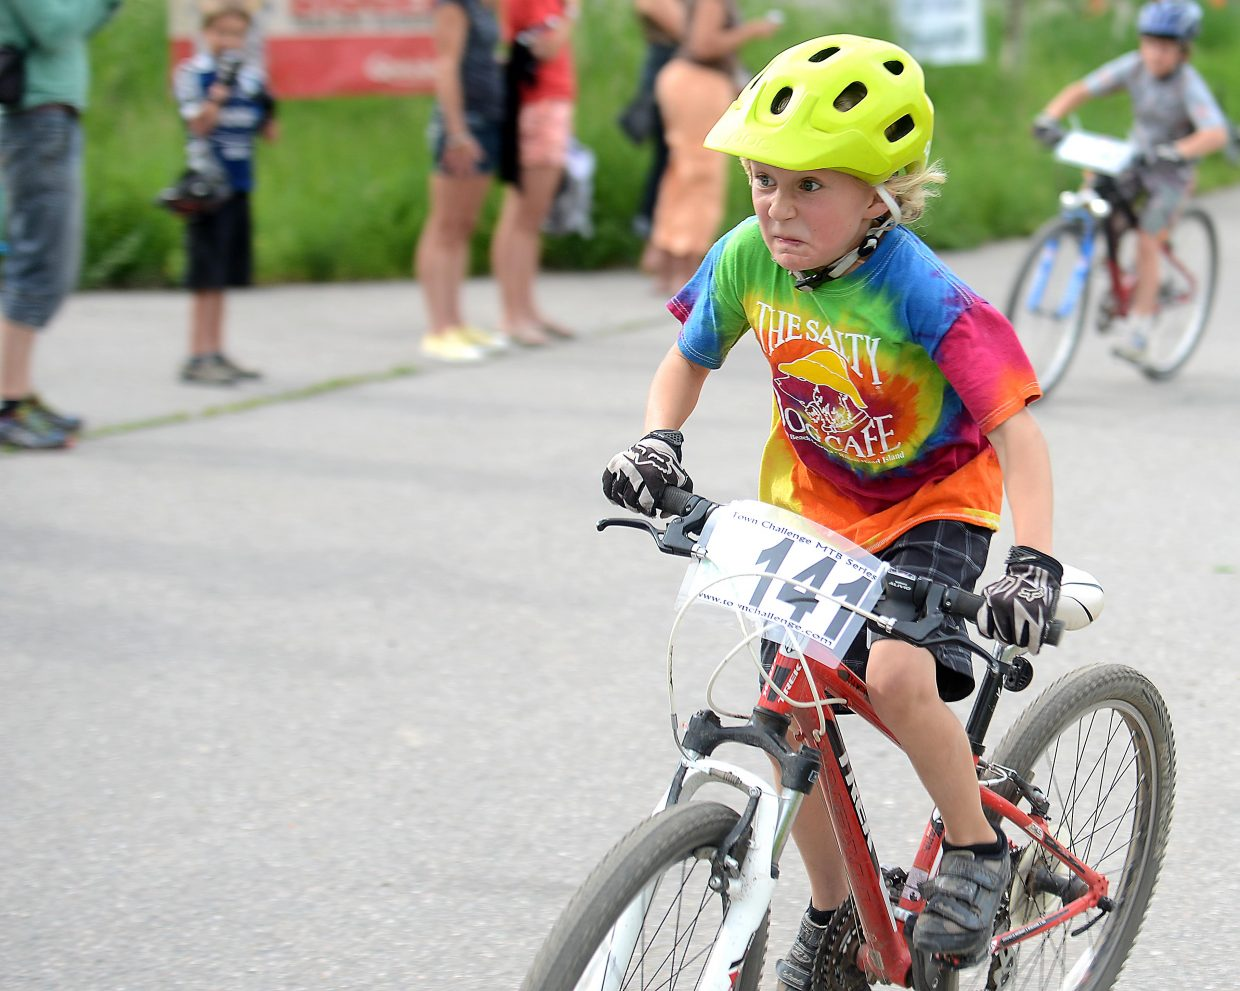 Jack Fox rides in Wednesday's Town Challenge mountain bike race at Marabou.